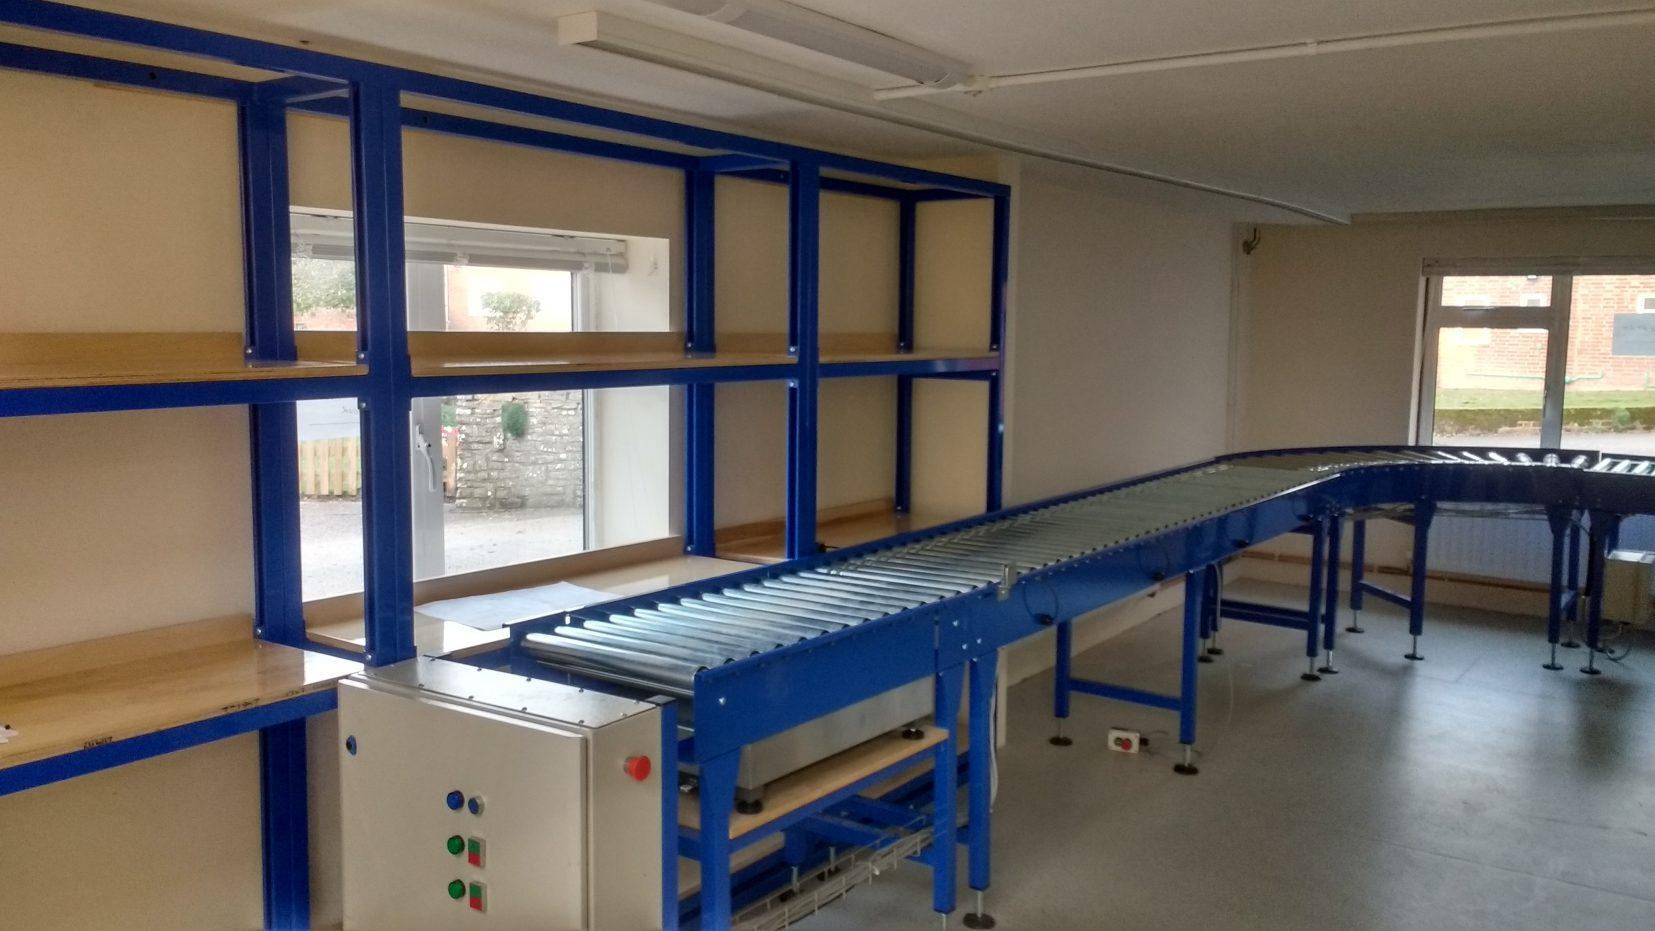 Adjustable height shelving unit and conveyor